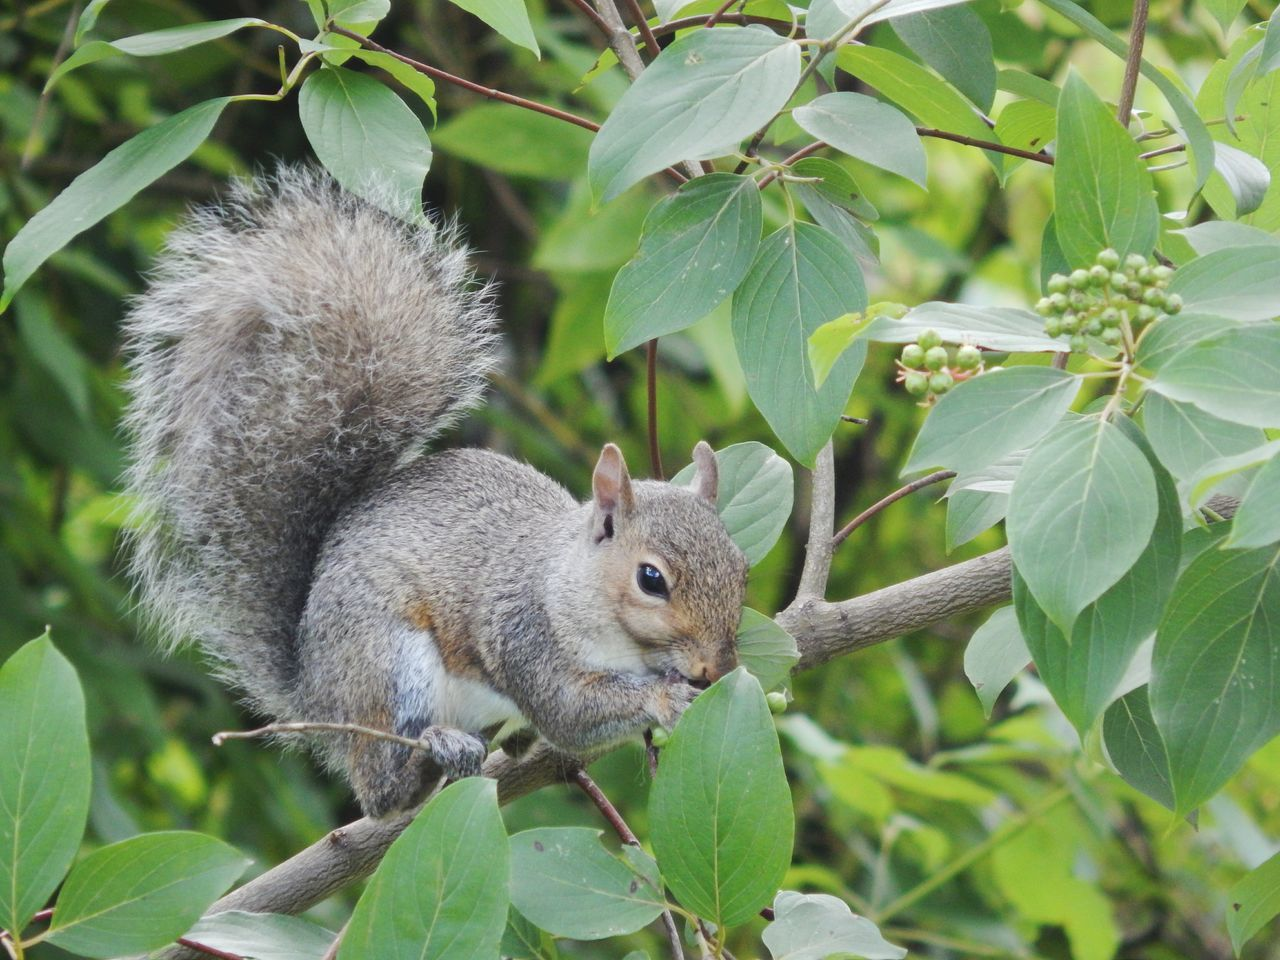 leaf, squirrel, nature, one animal, mammal, animals in the wild, plant, outdoors, no people, animal themes, day, close-up, tree